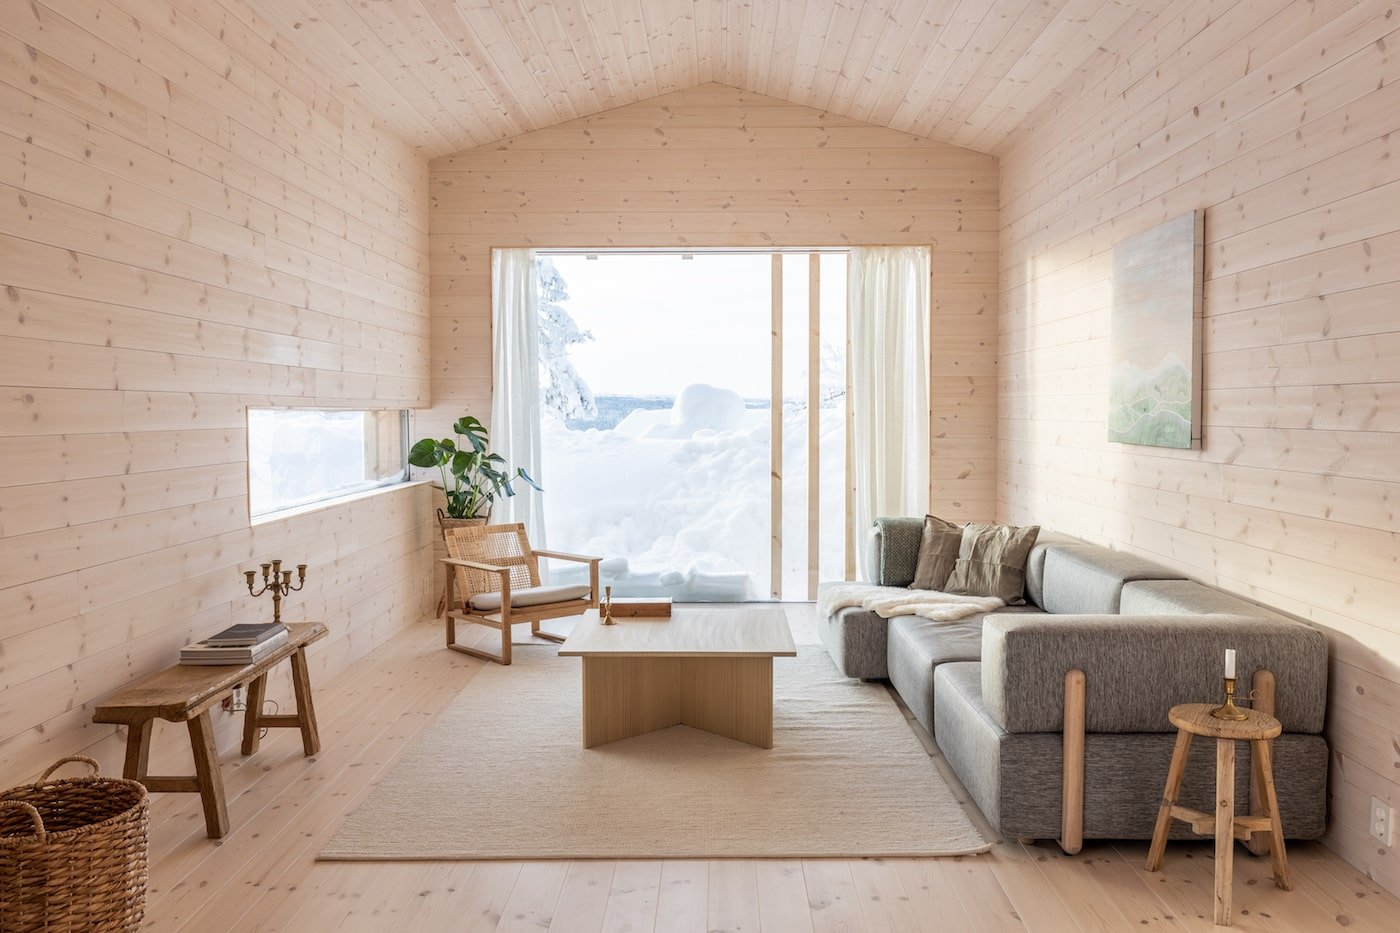 Timber lined ceiling, walls and floor in lounge room of Kvitfjell Cabin